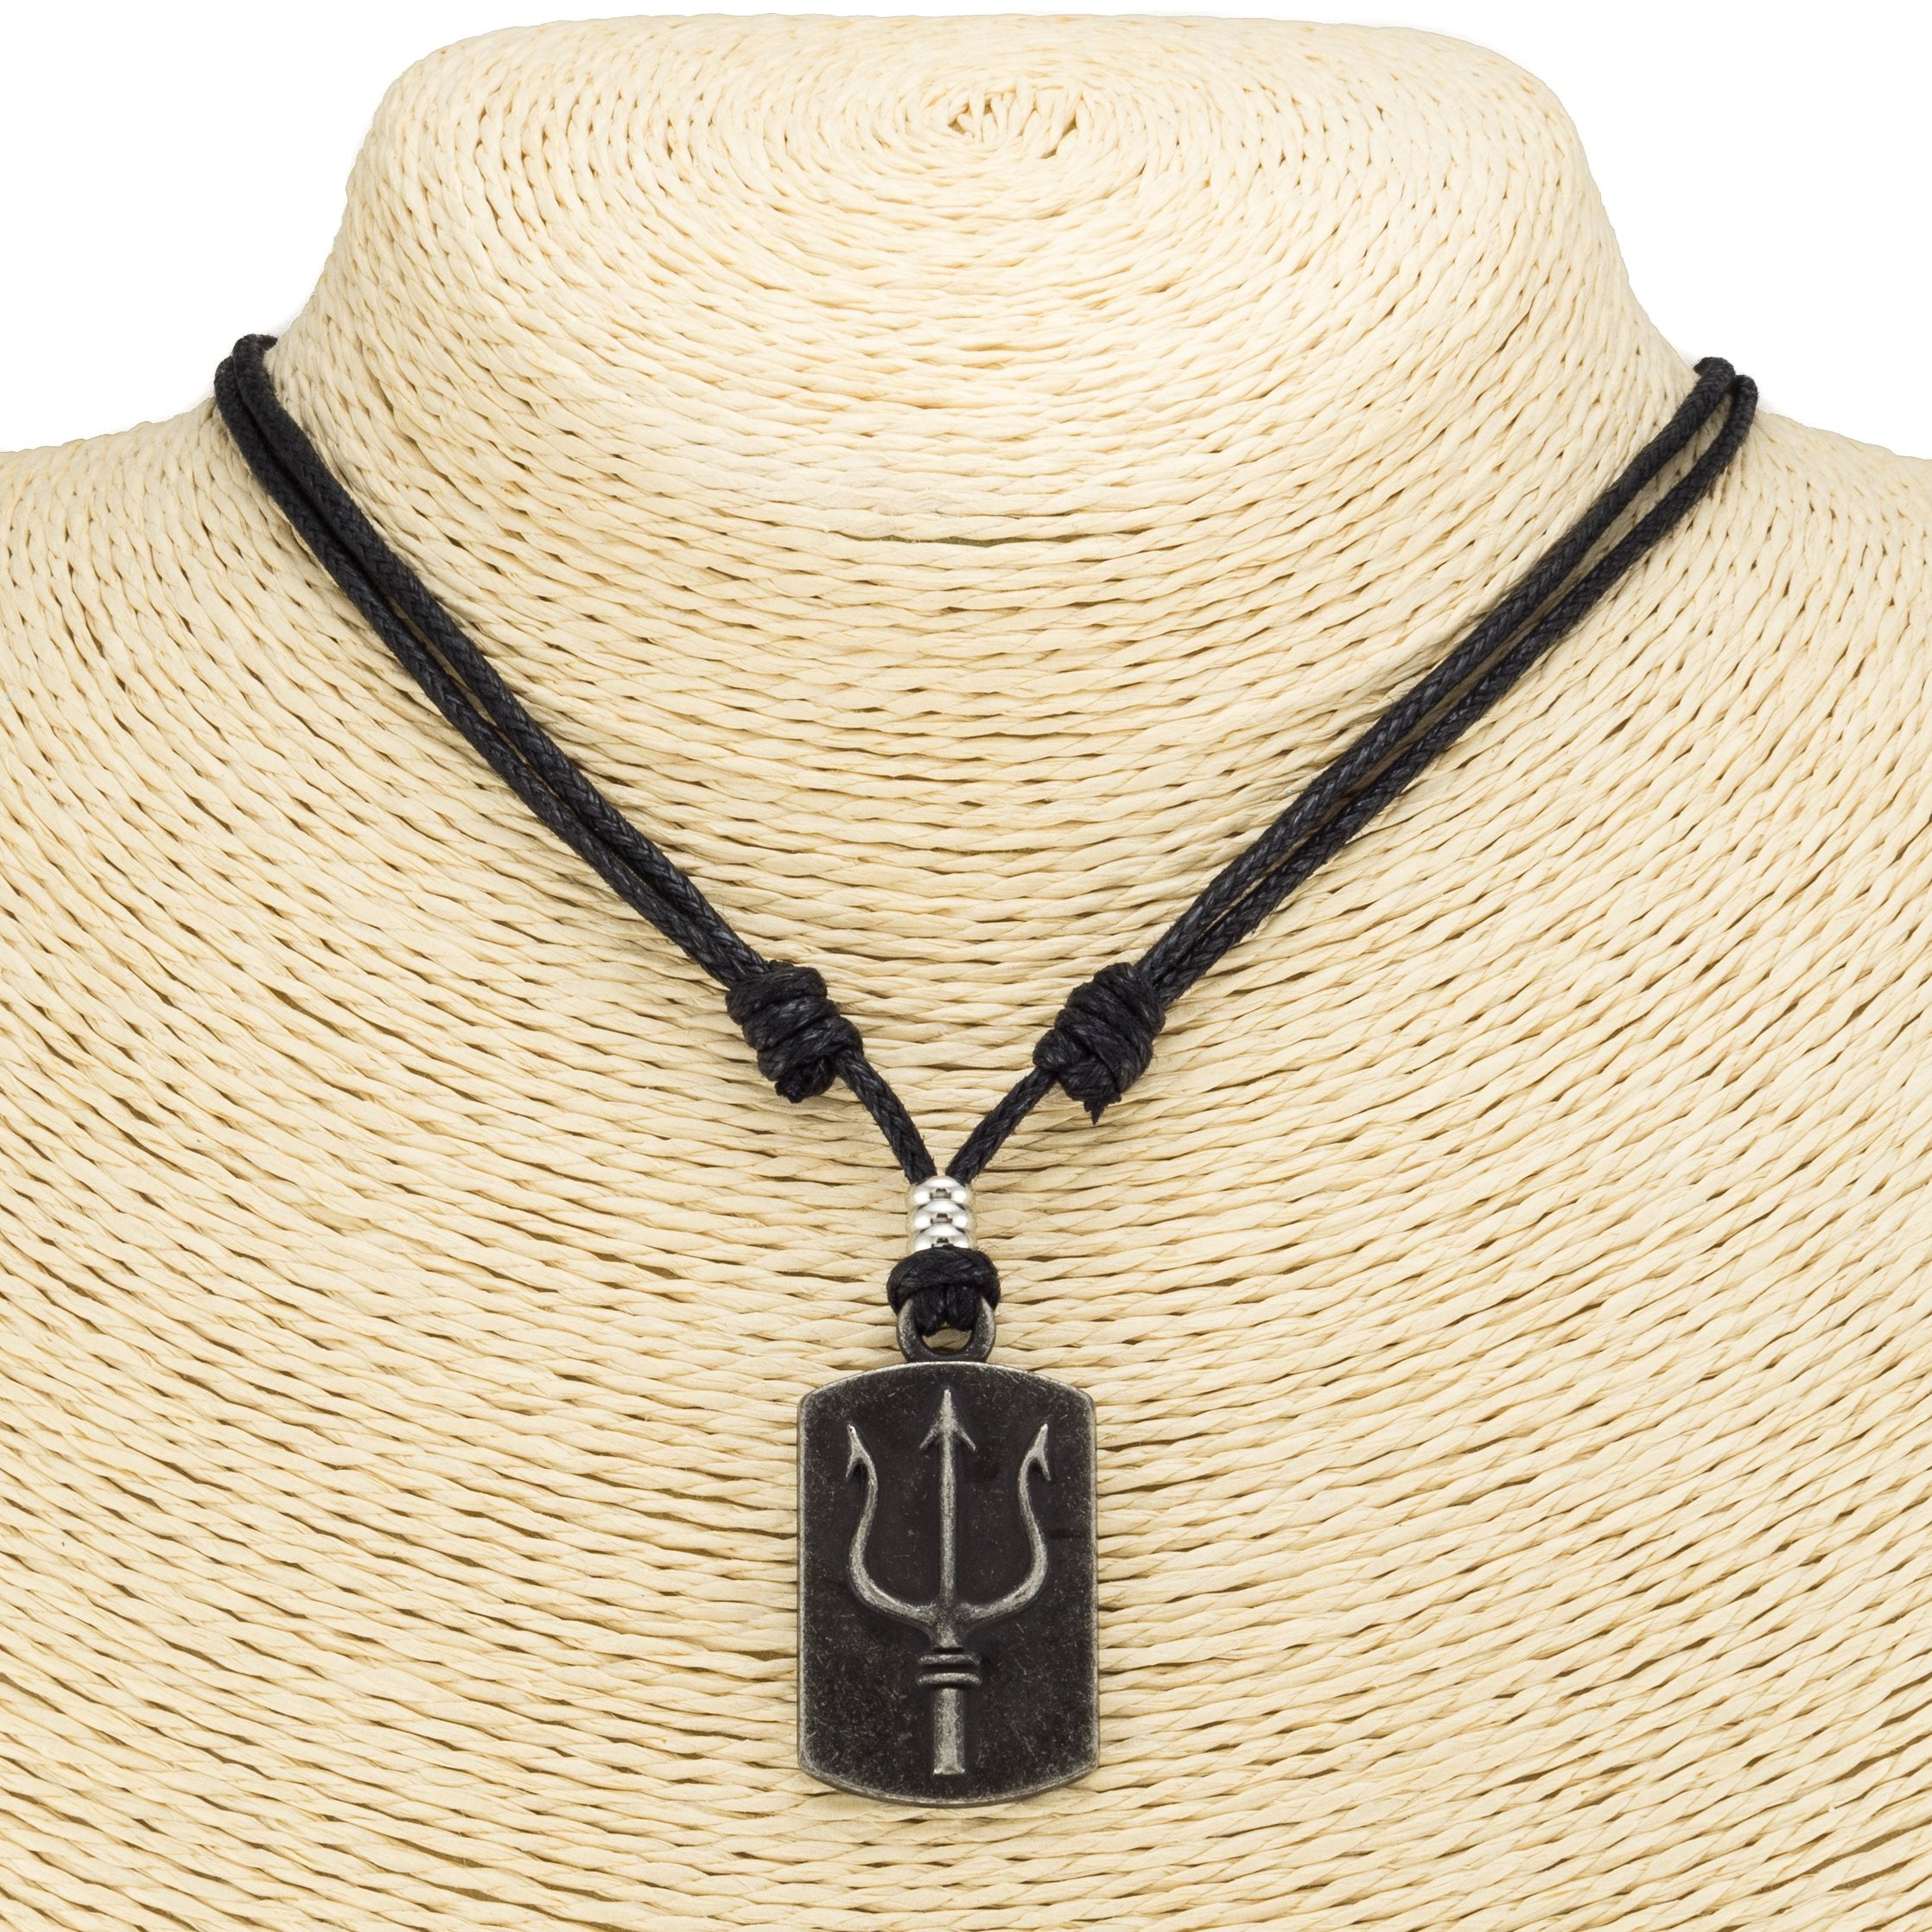 Trident Dog-tag Pendant on Adjustable Rope Necklace